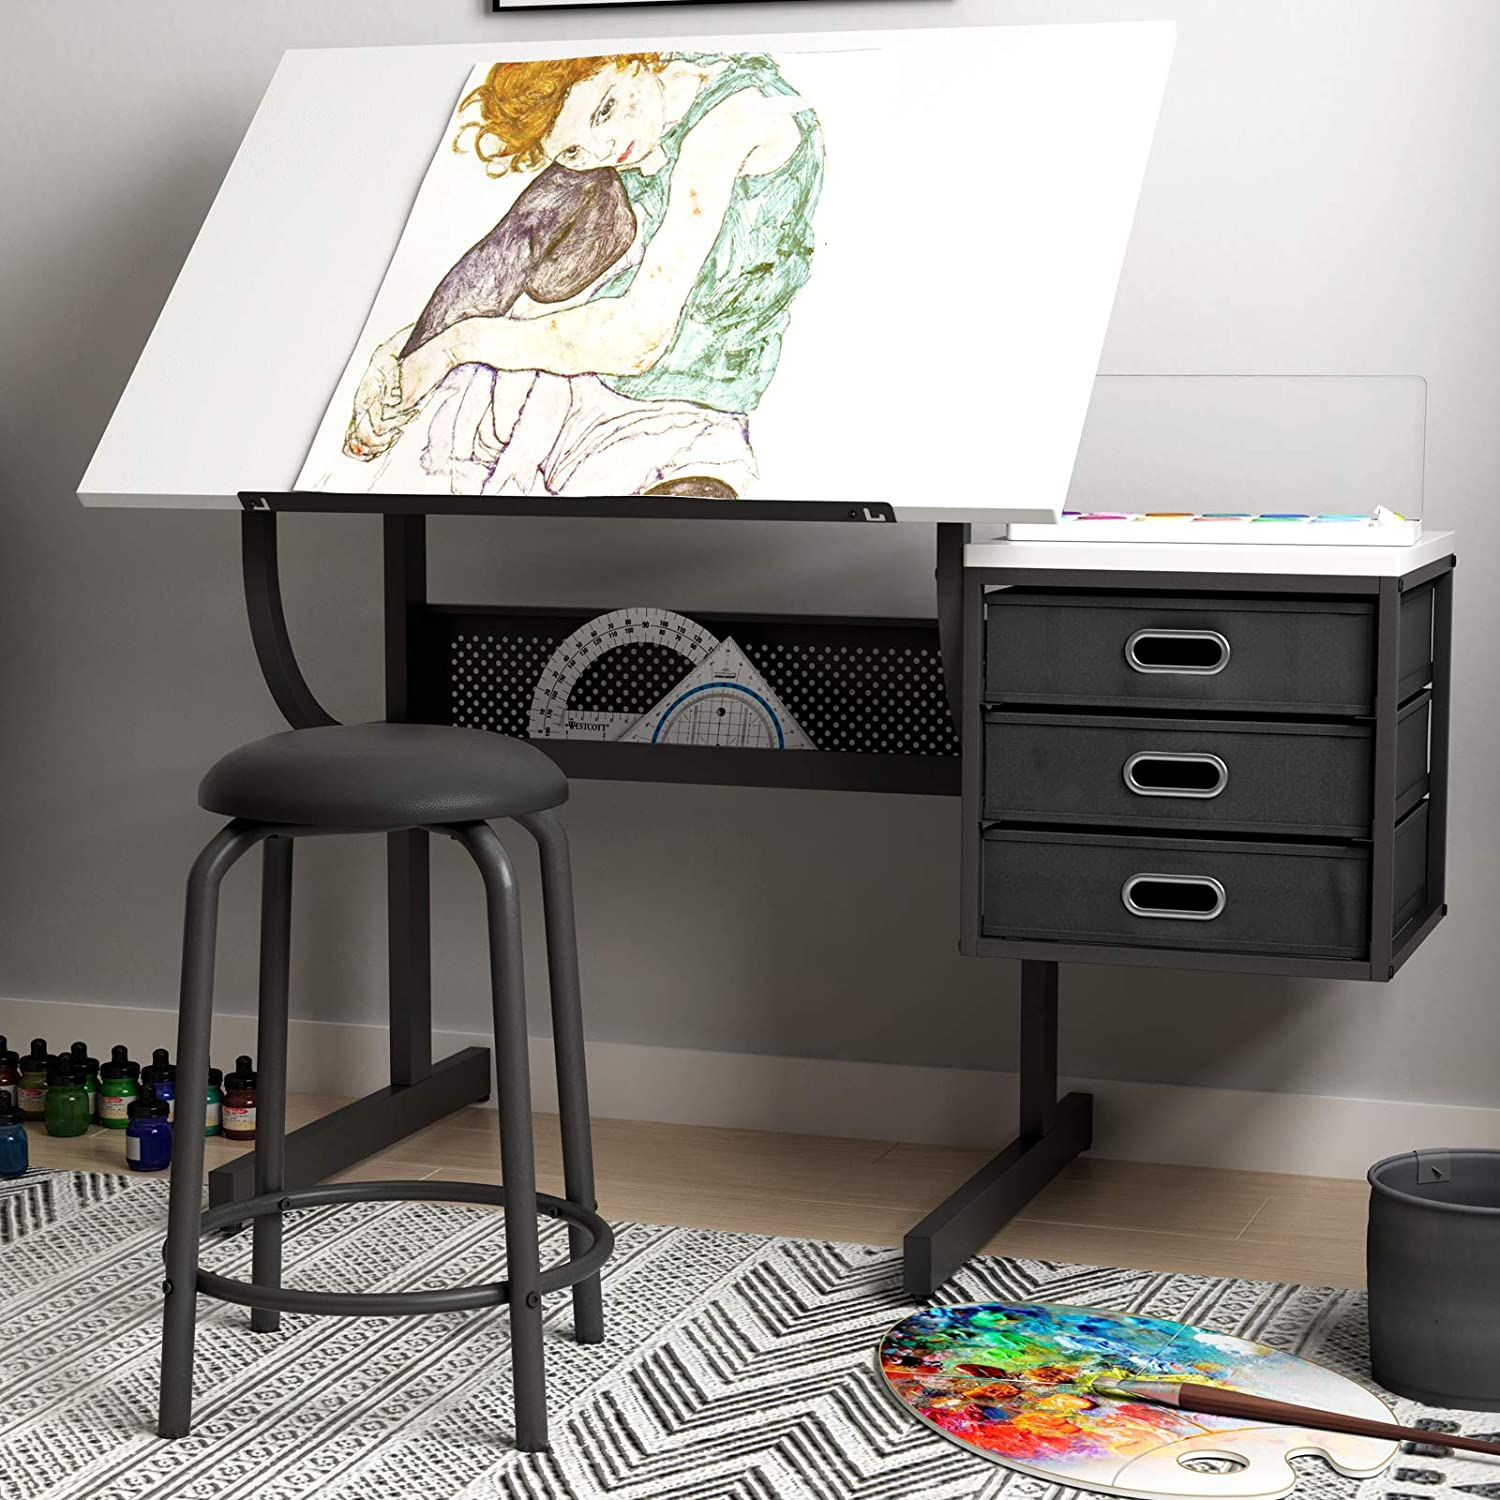 Max 49% OFF SDHYL Adjustable Drawing Desk Craft OFFicial site with Station Table Drafting